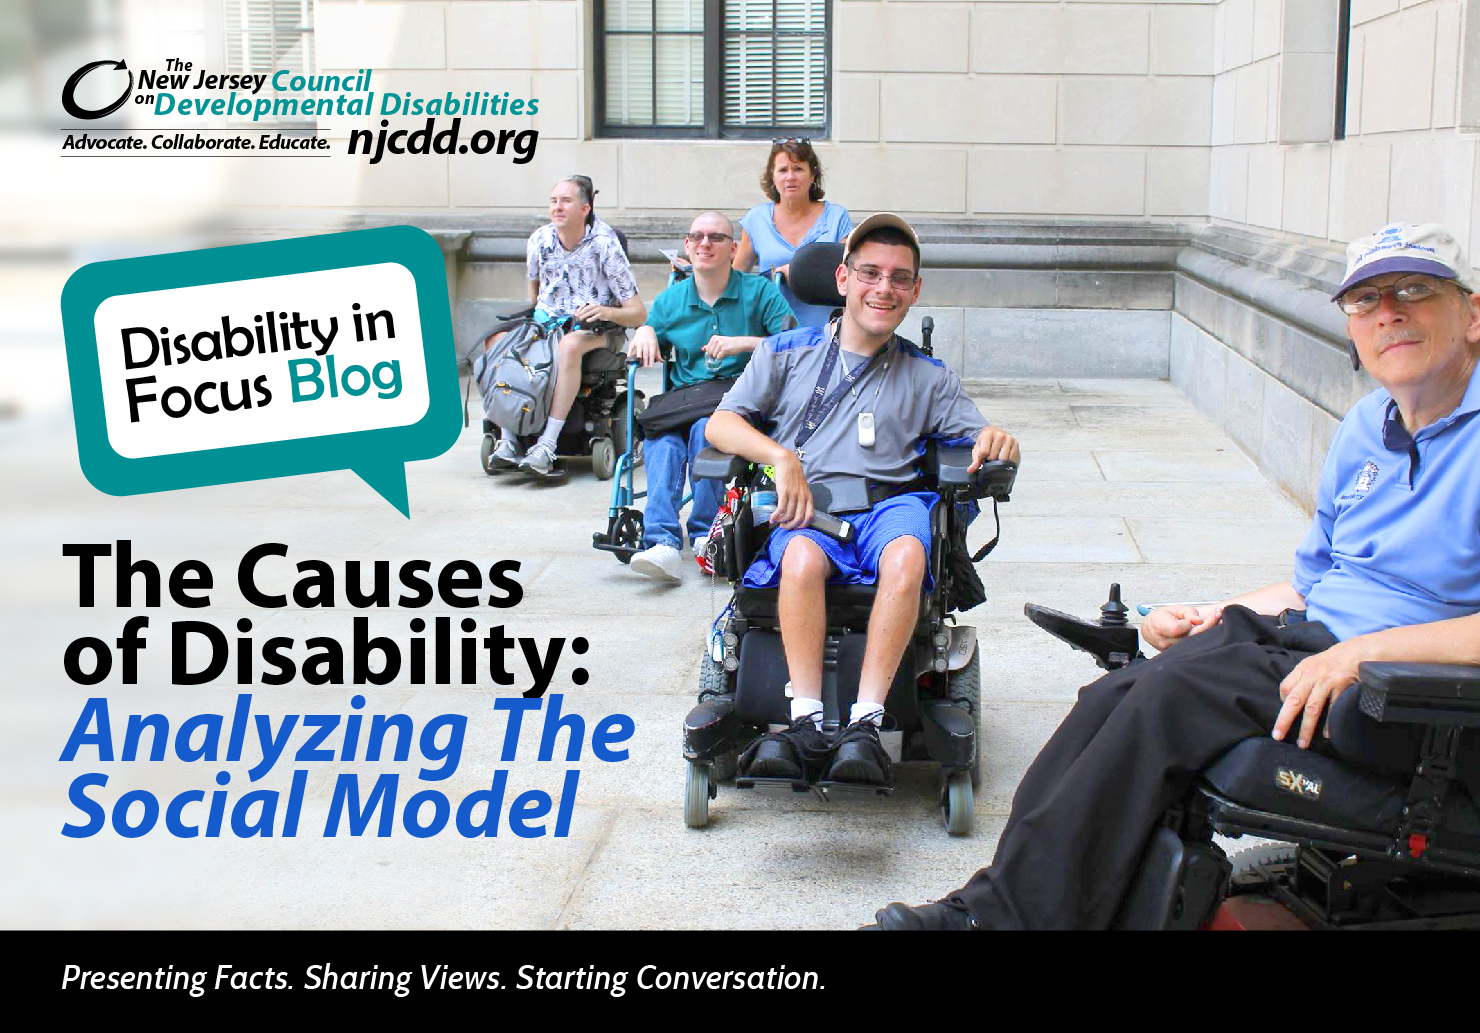 The Causes of Disability: Analyzing The Social Model